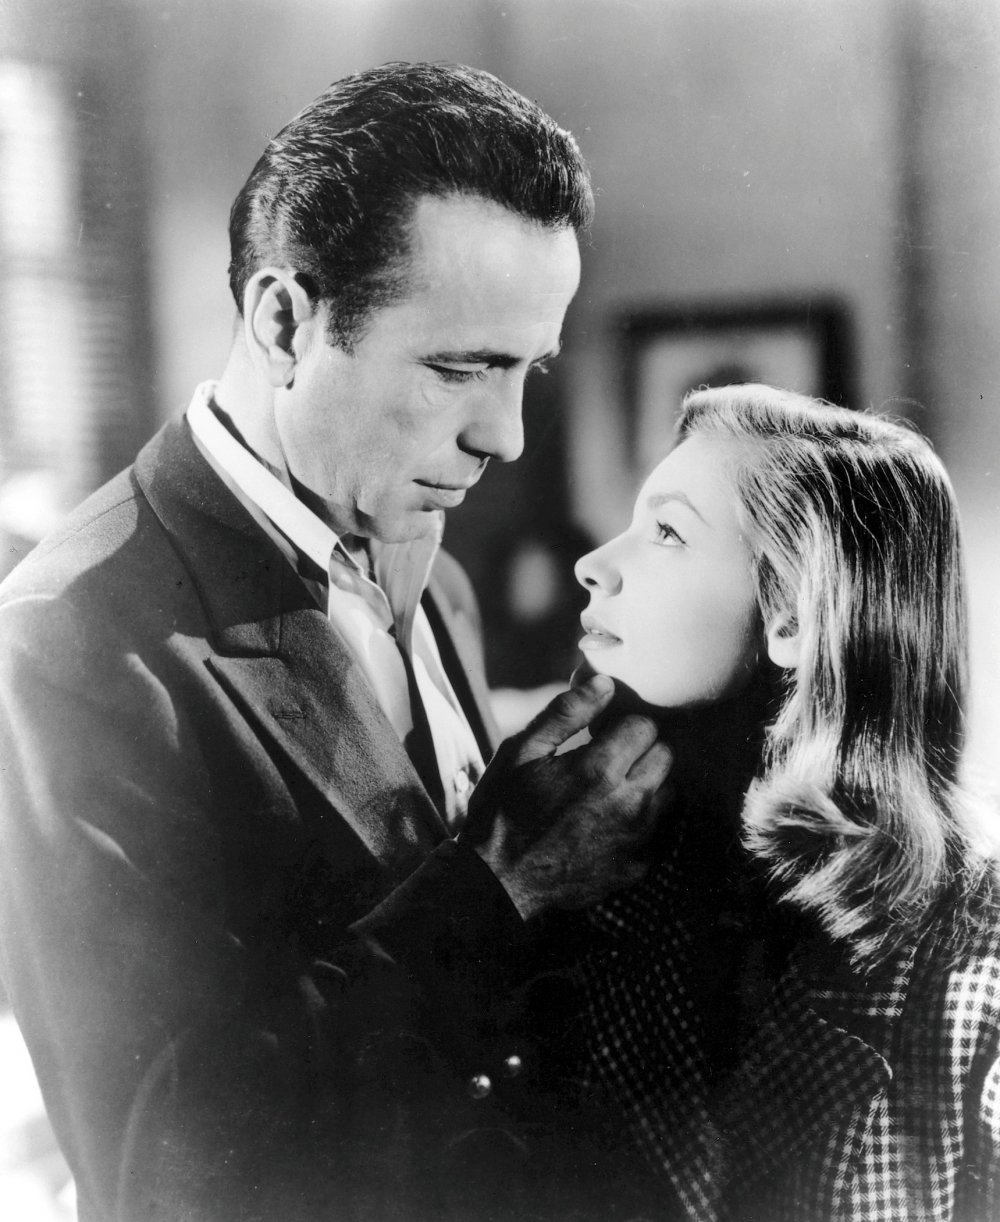 Bogart and Lauren Bacall in their first onscreen pairing, To Have and Have Not (1944)